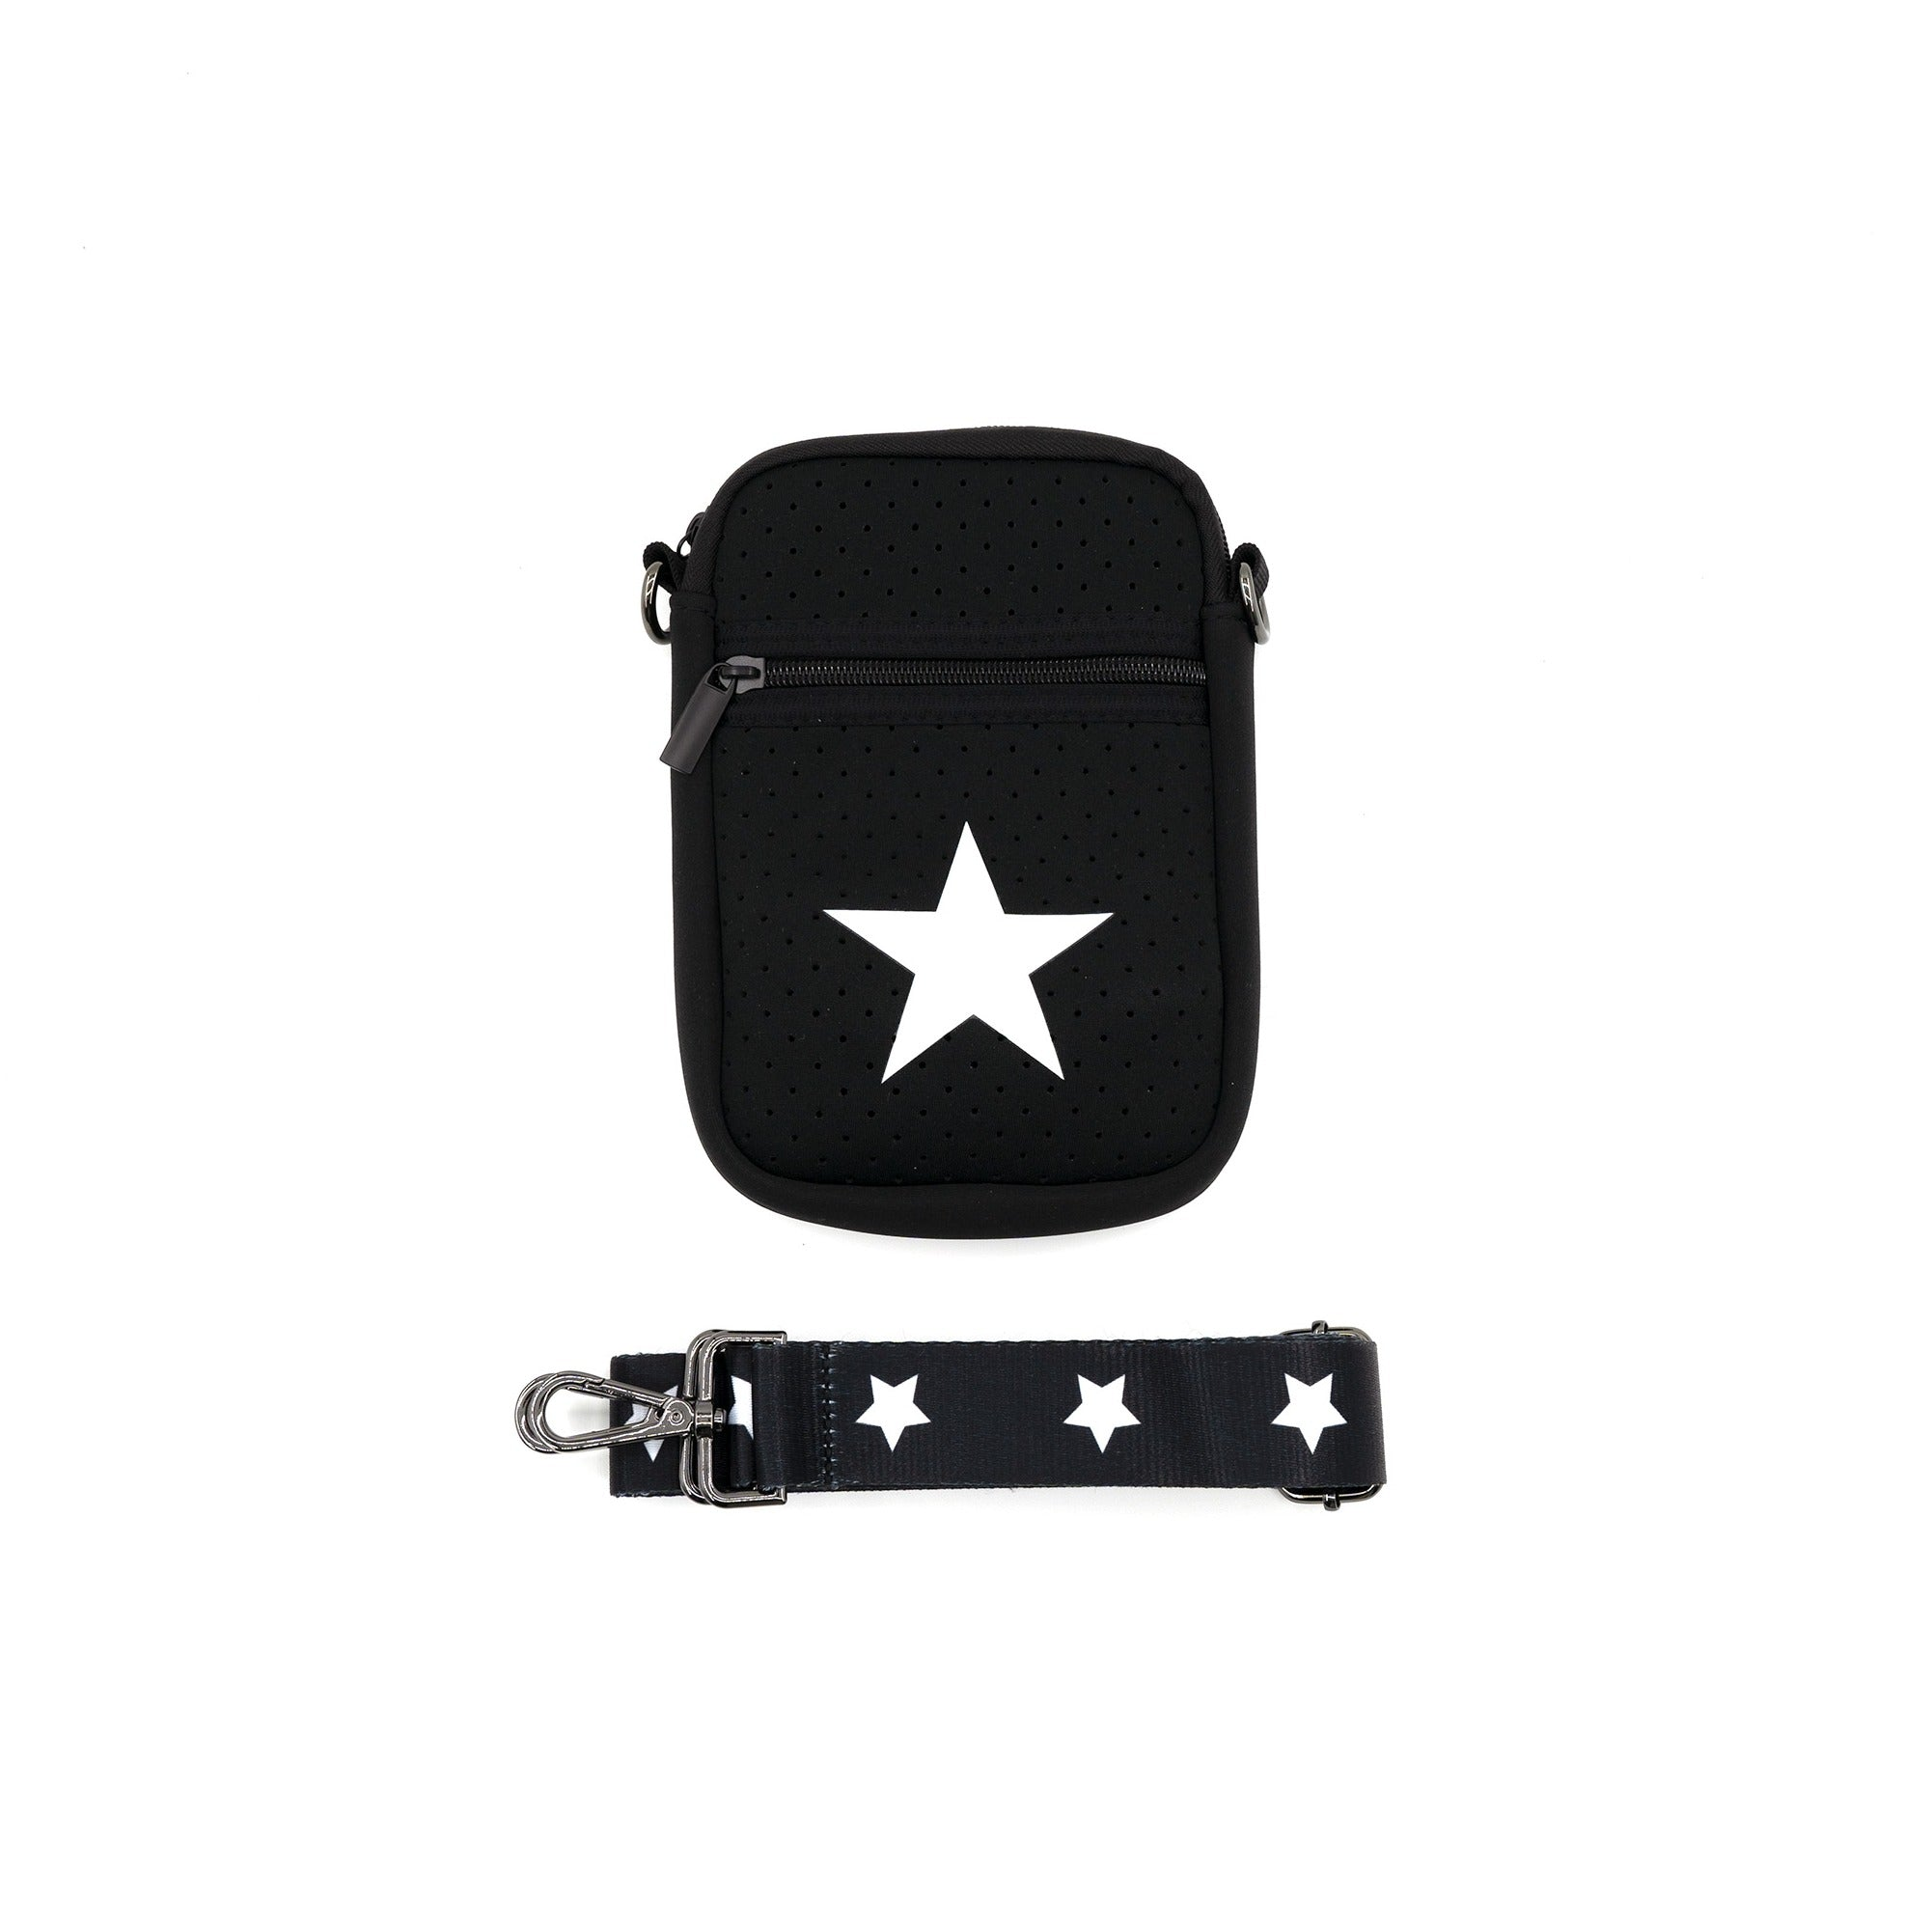 Neoprene Cross Body Cell Phone Bag - Impulse Jewelry and Accessories